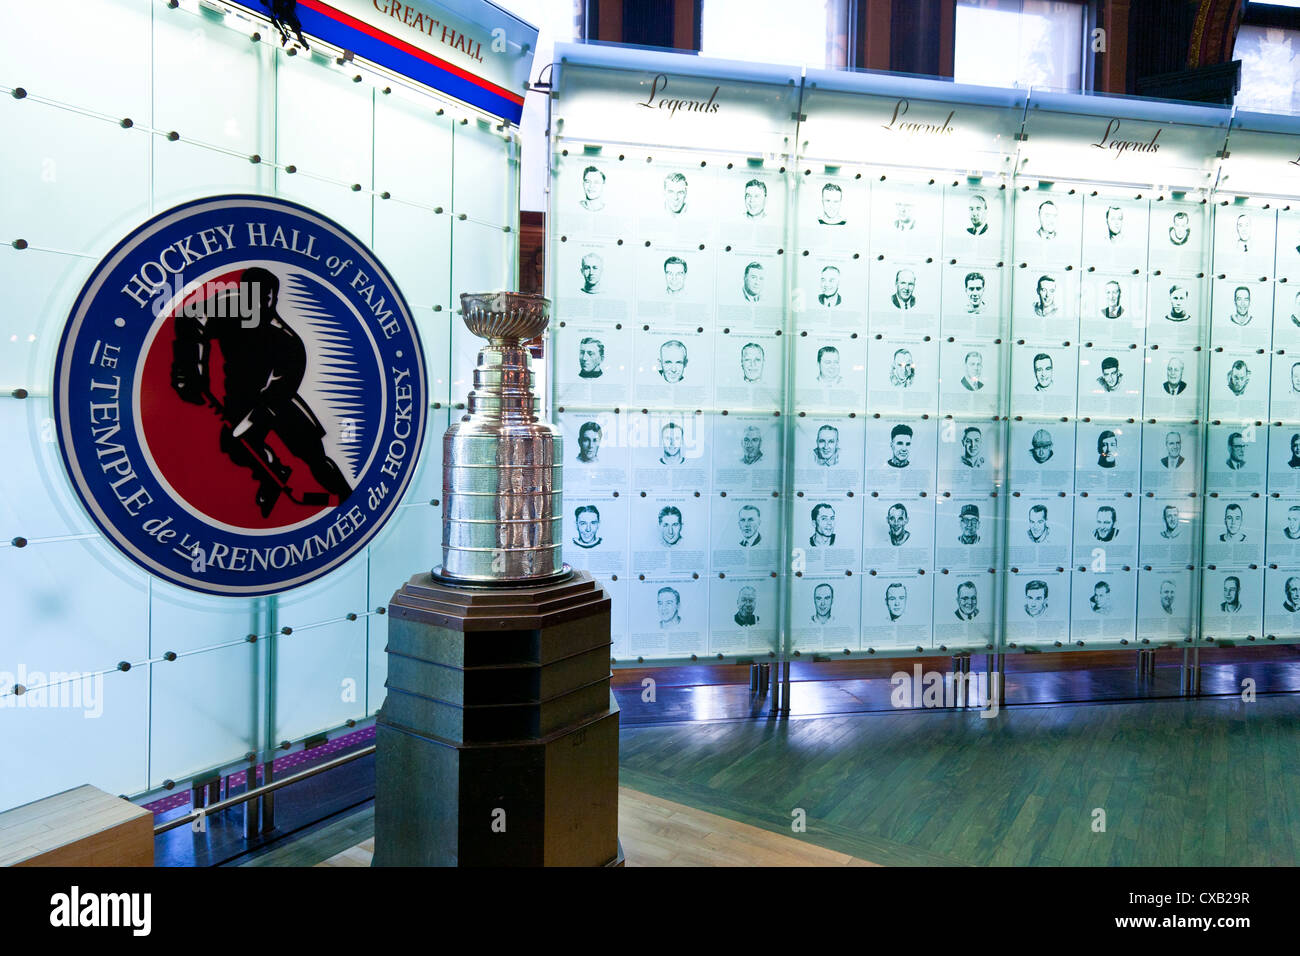 Hockey Hall Of Fame in Toronto, Ontario, Kanada, Nordamerika Stockbild